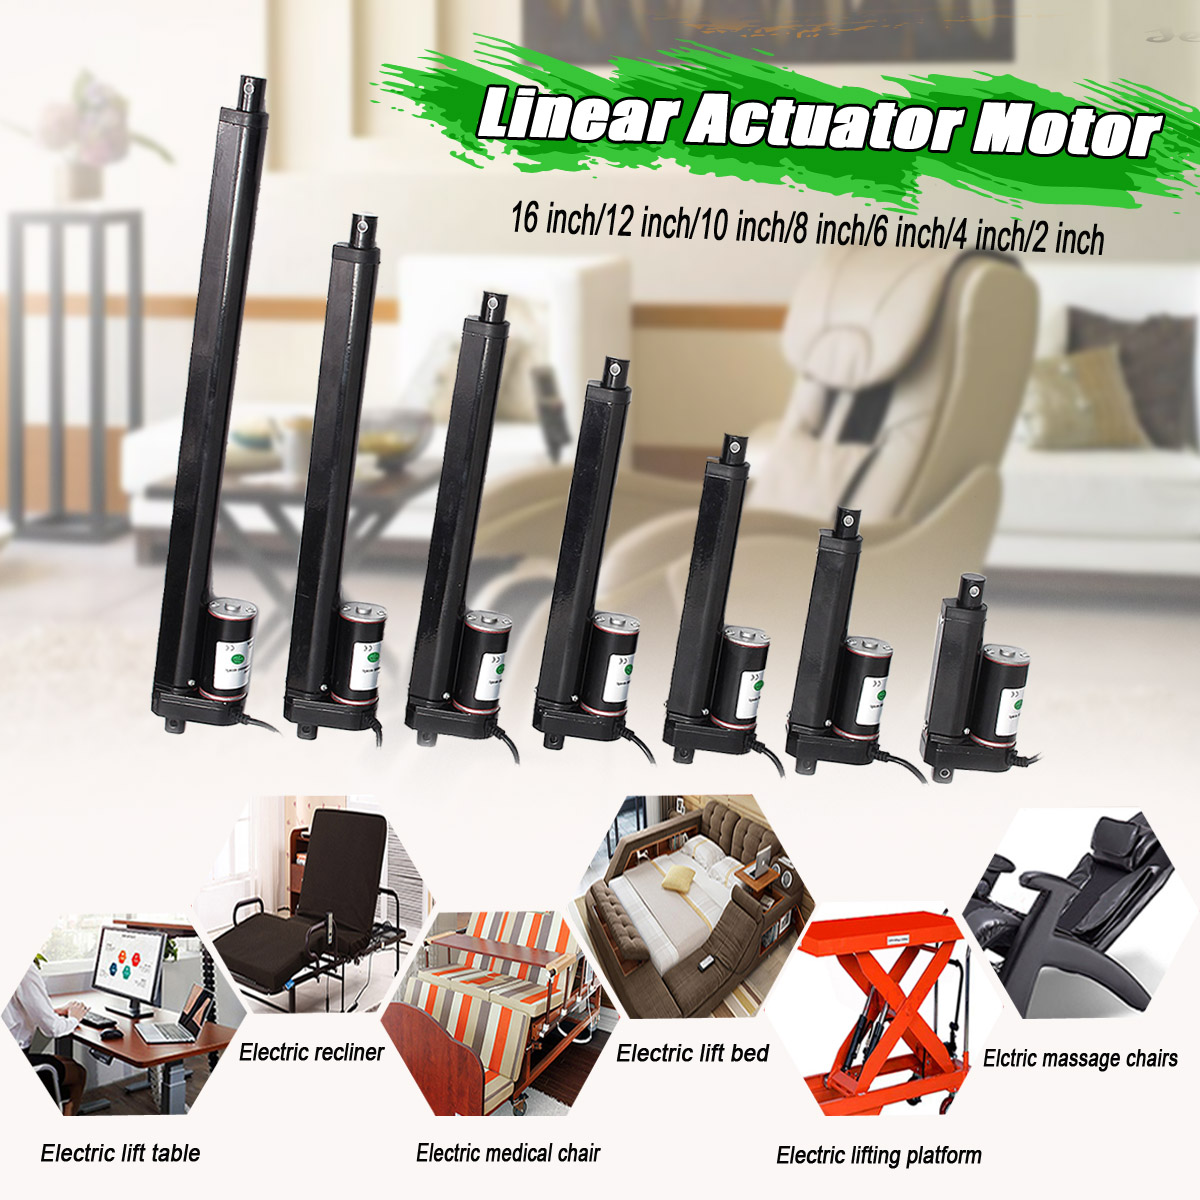 12V Heavy   750N 2-16 Inch 50-400MM Stroke Electric Linear Actuator Motor Lifting Tools DC Motor Excellent Workmanship